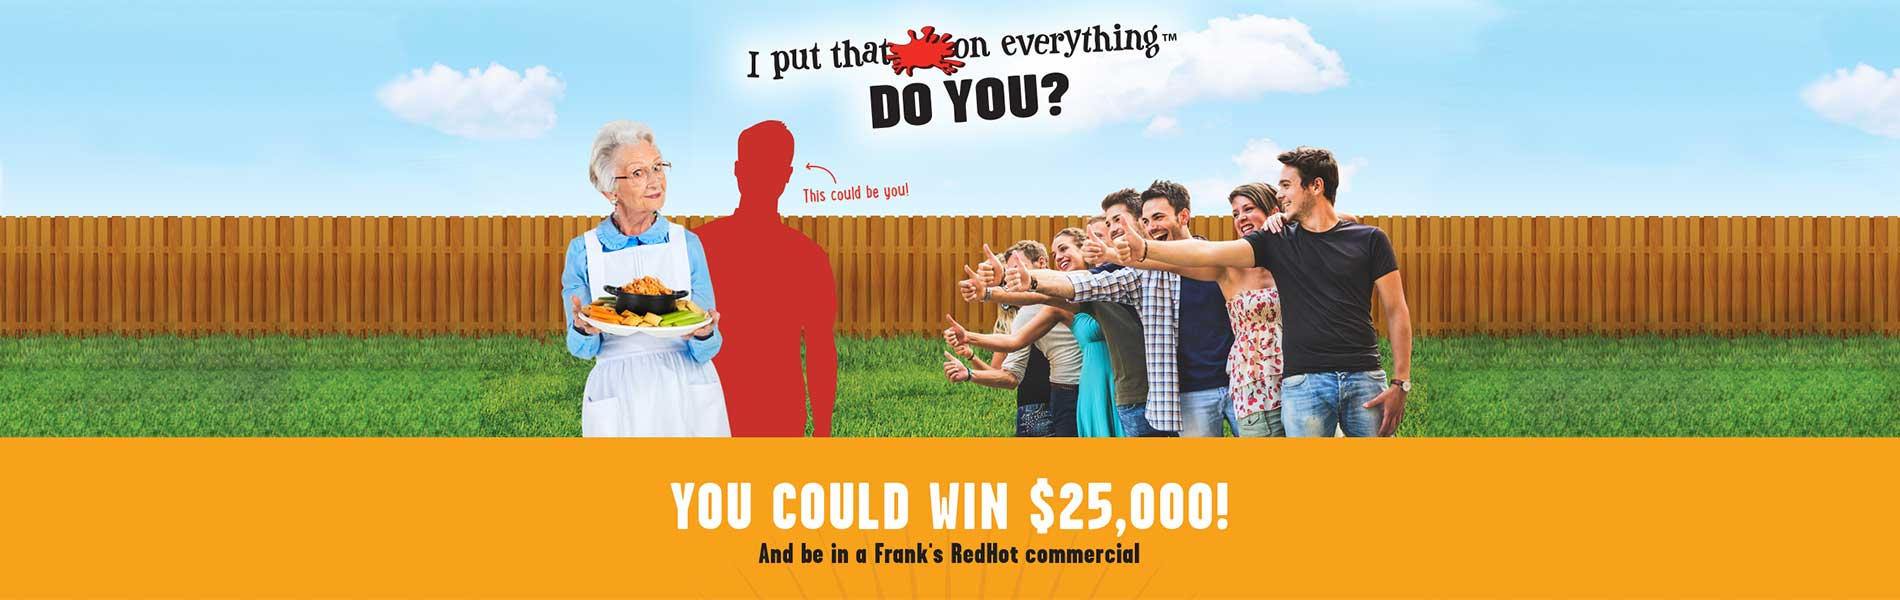 Franks red hot contest